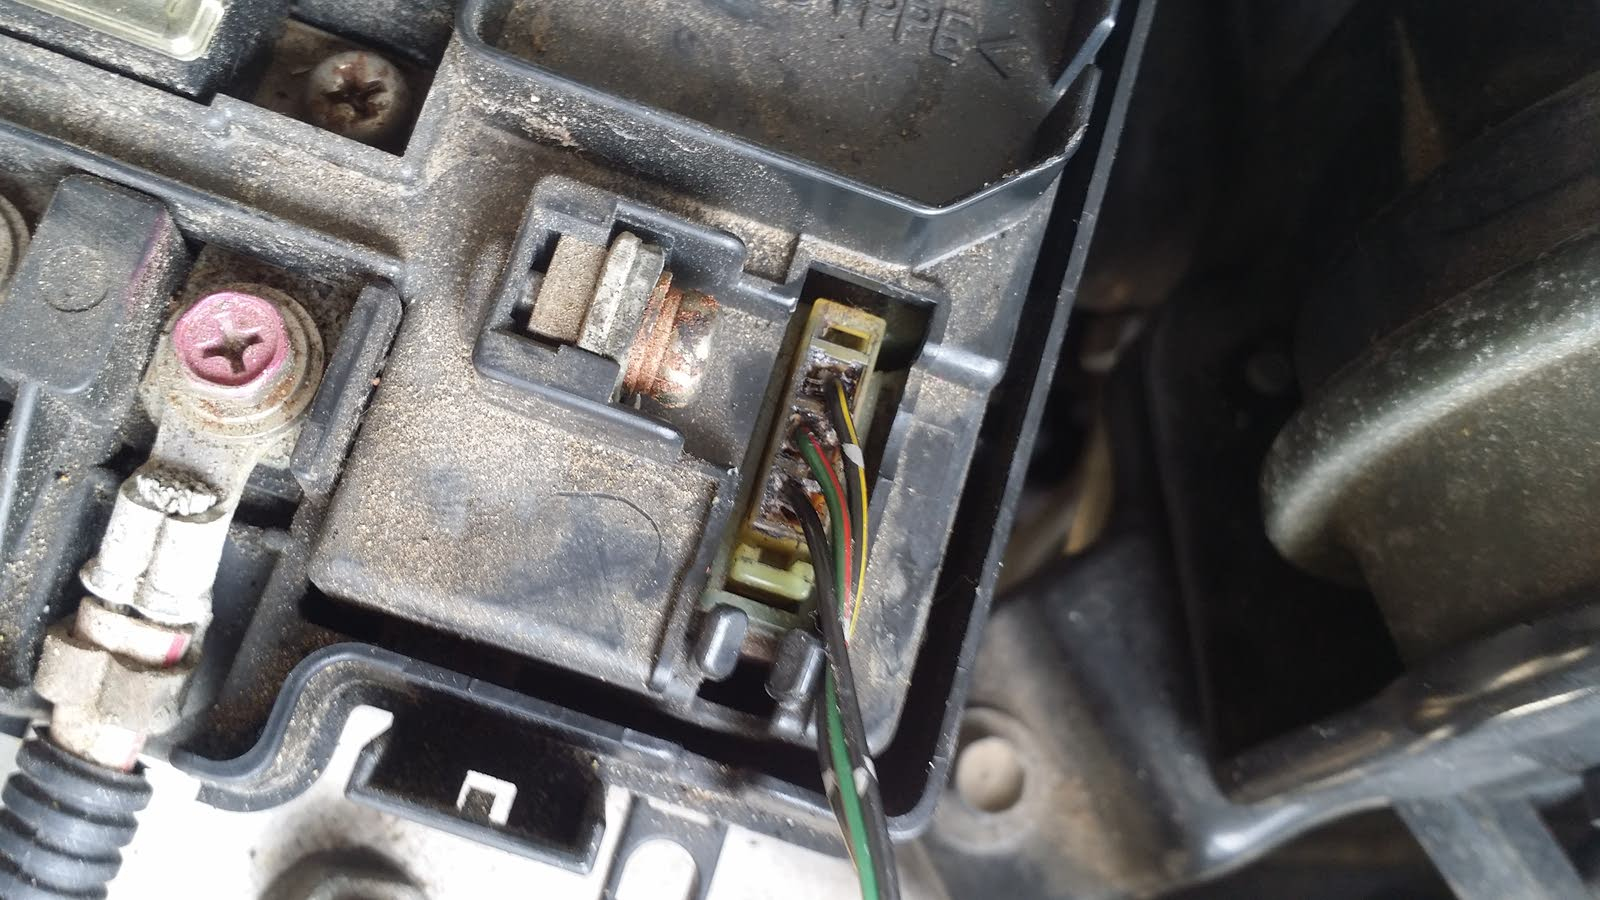 The 3 wires coming from fuse box under hood by the ELD is fried or  something what I'd this 3 thing and how do I fix it I have looked up fuse